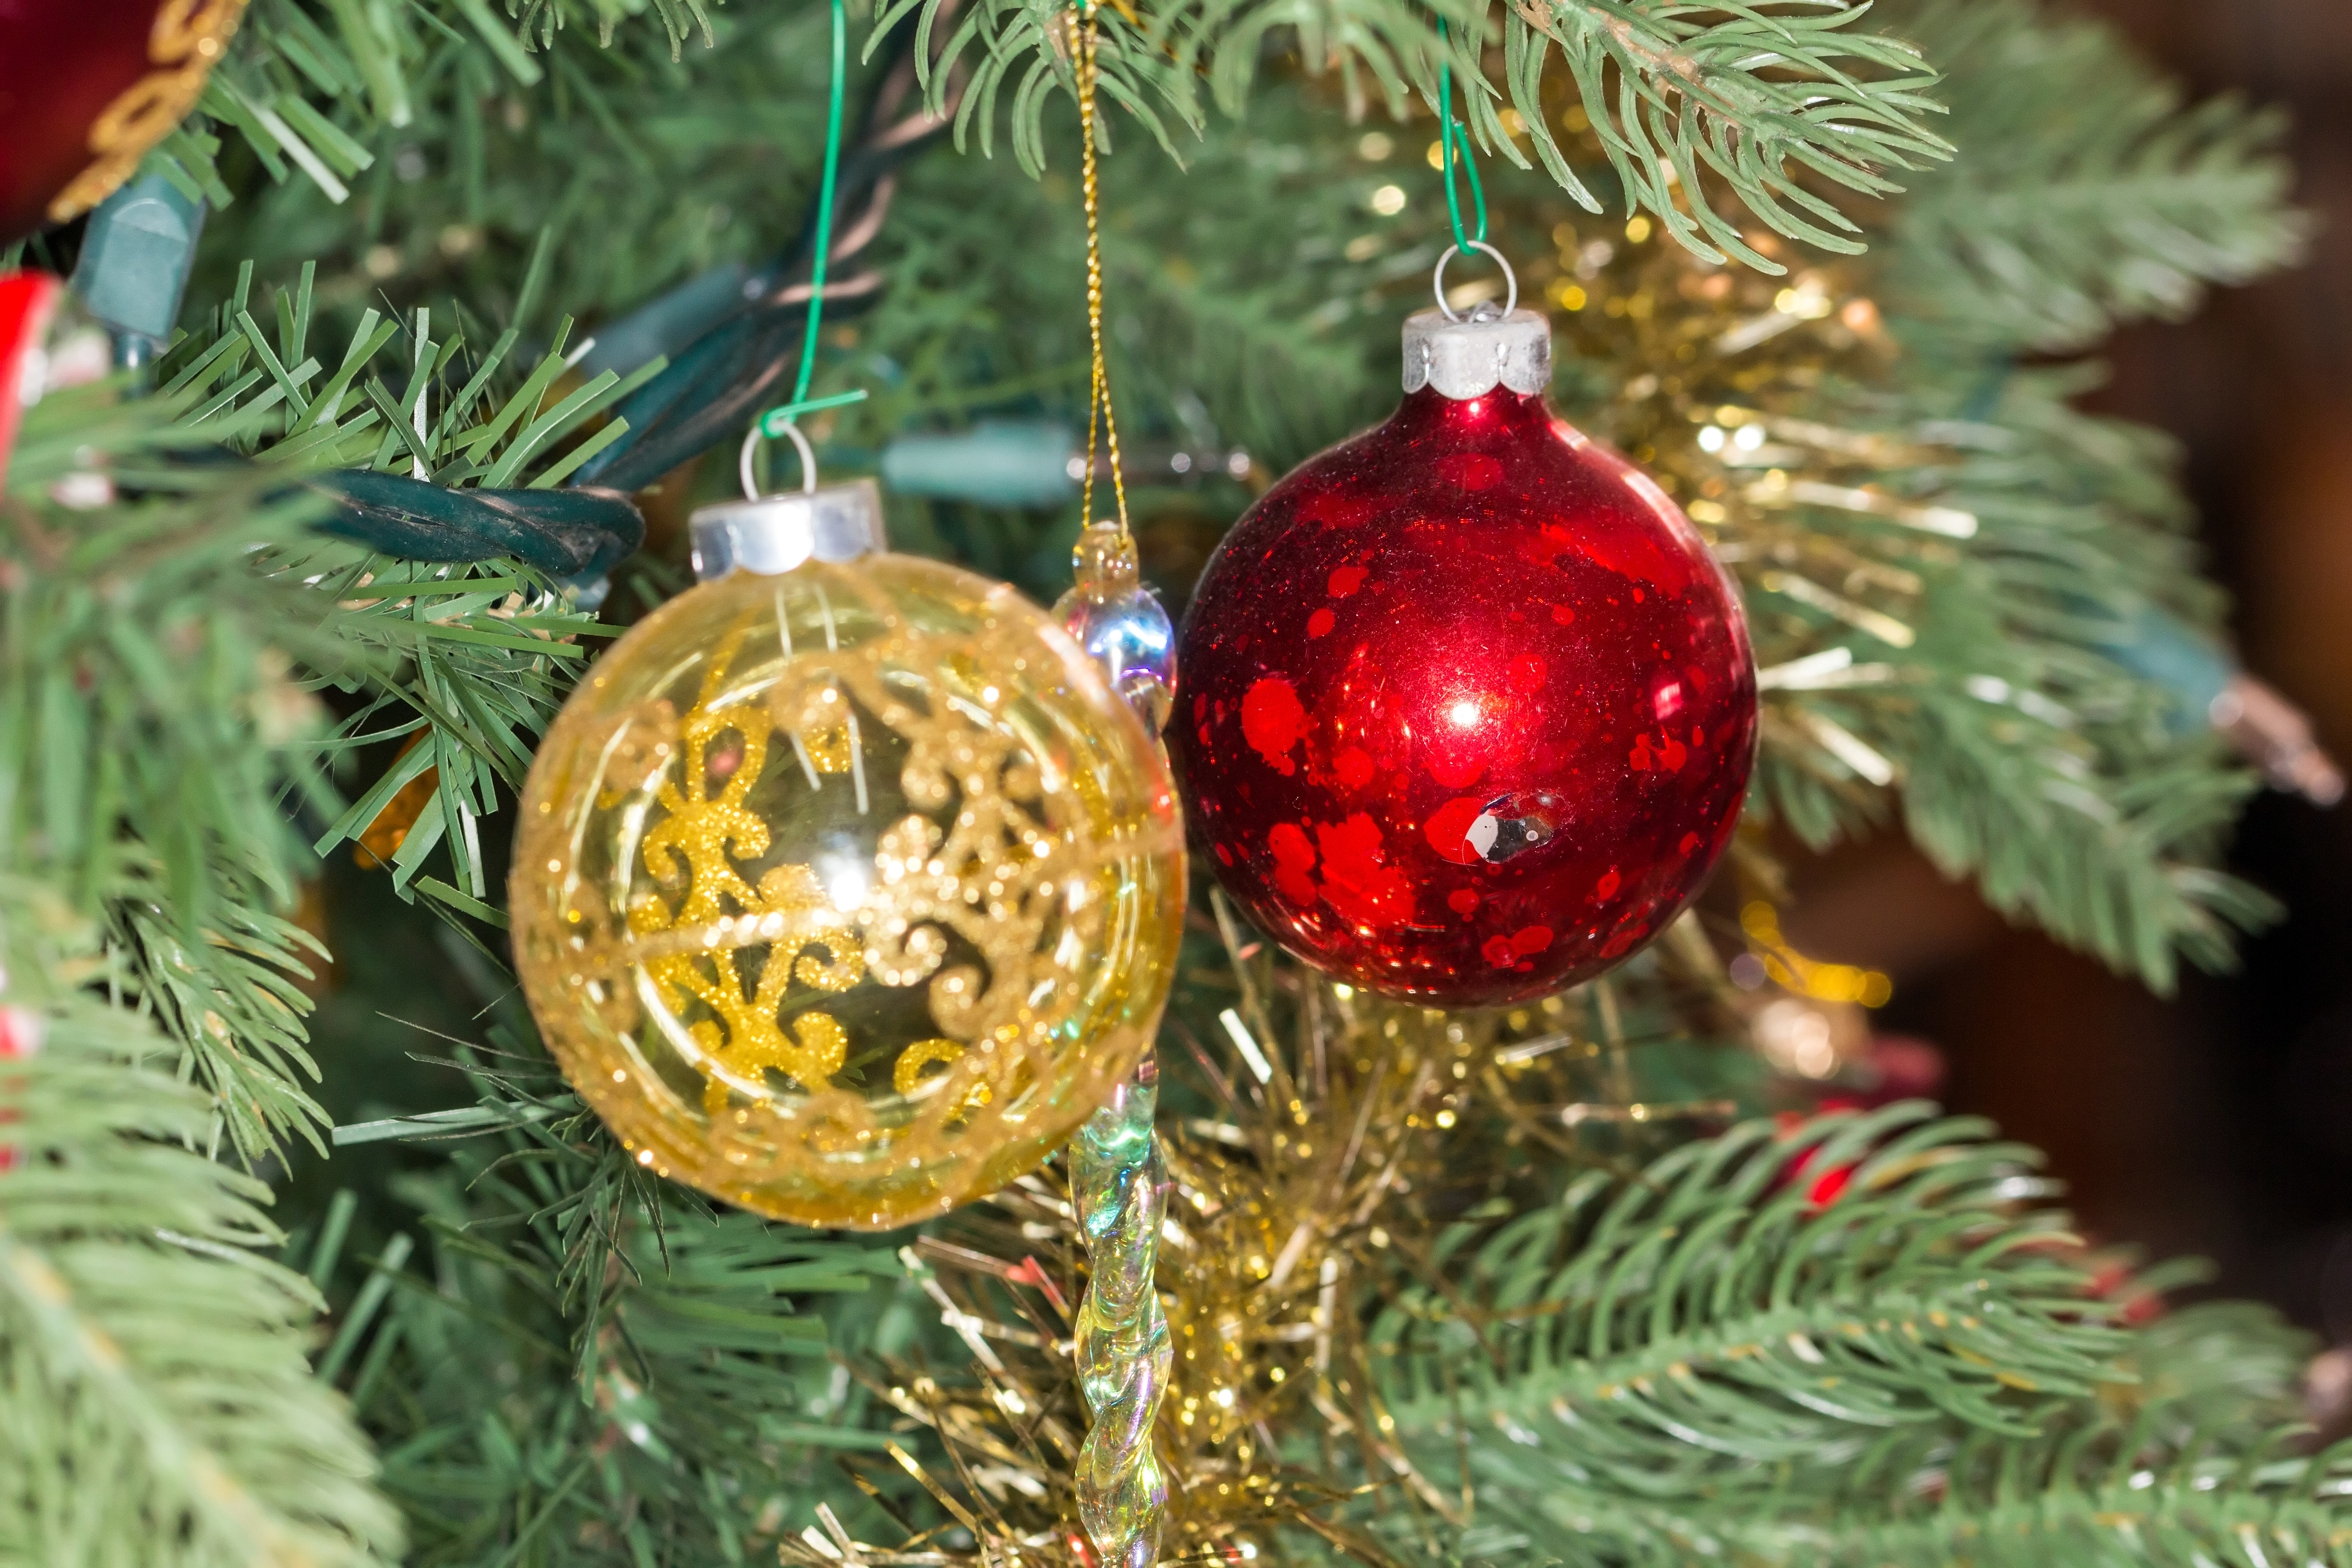 File:christmas Ornaments On An Artificial Tree, 20141231 02